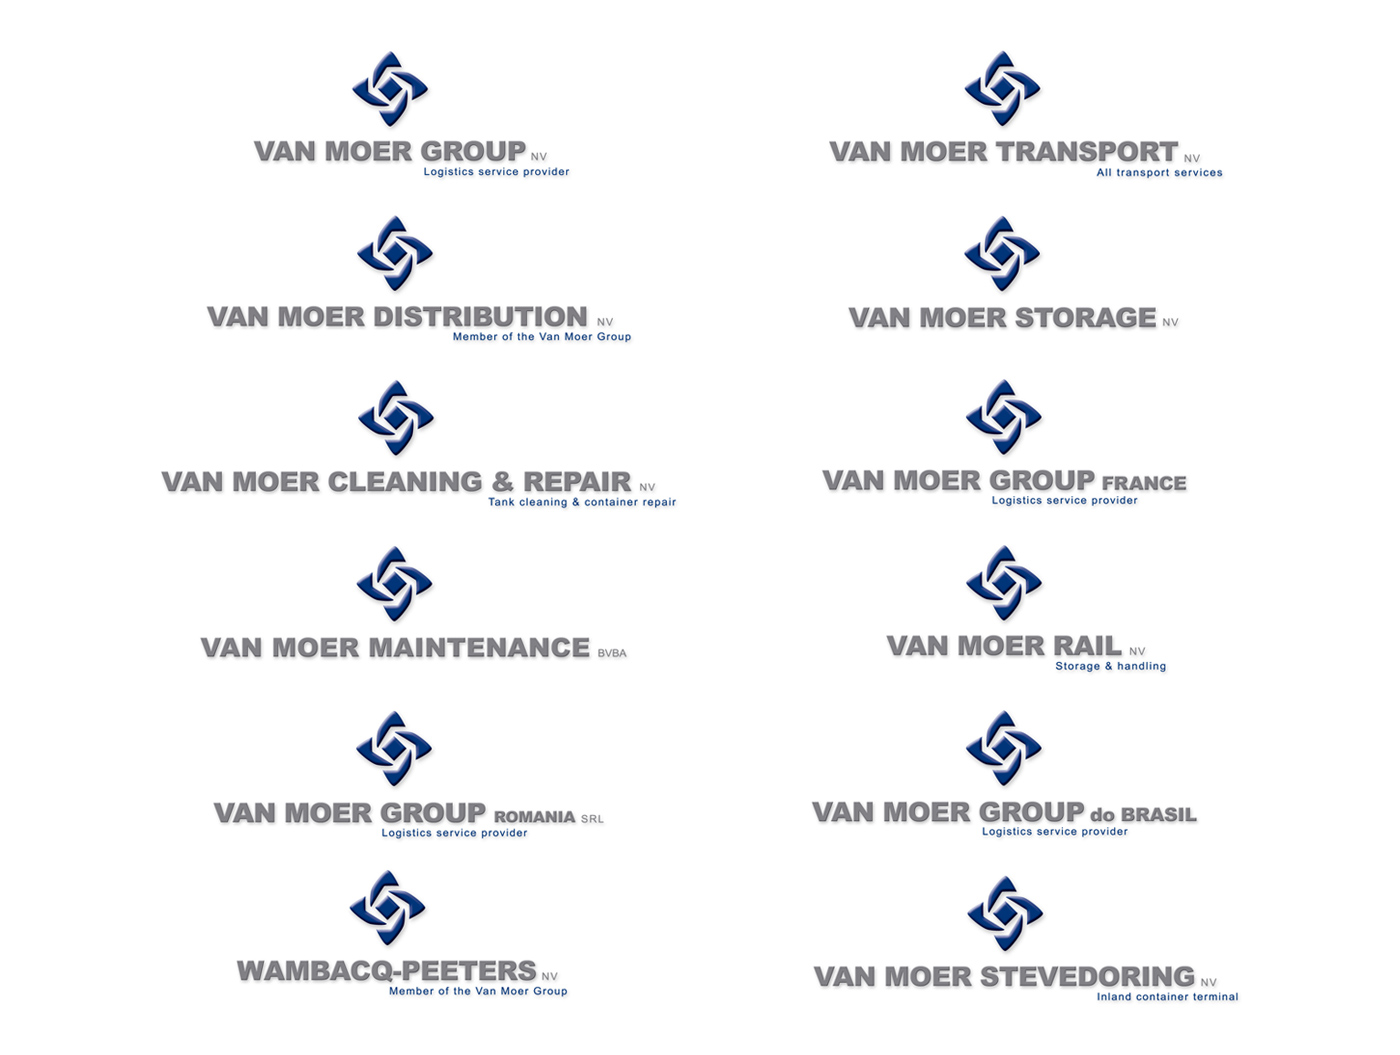 Van Moer Group logo design by Bert Vanden Berghe for Graffito nv